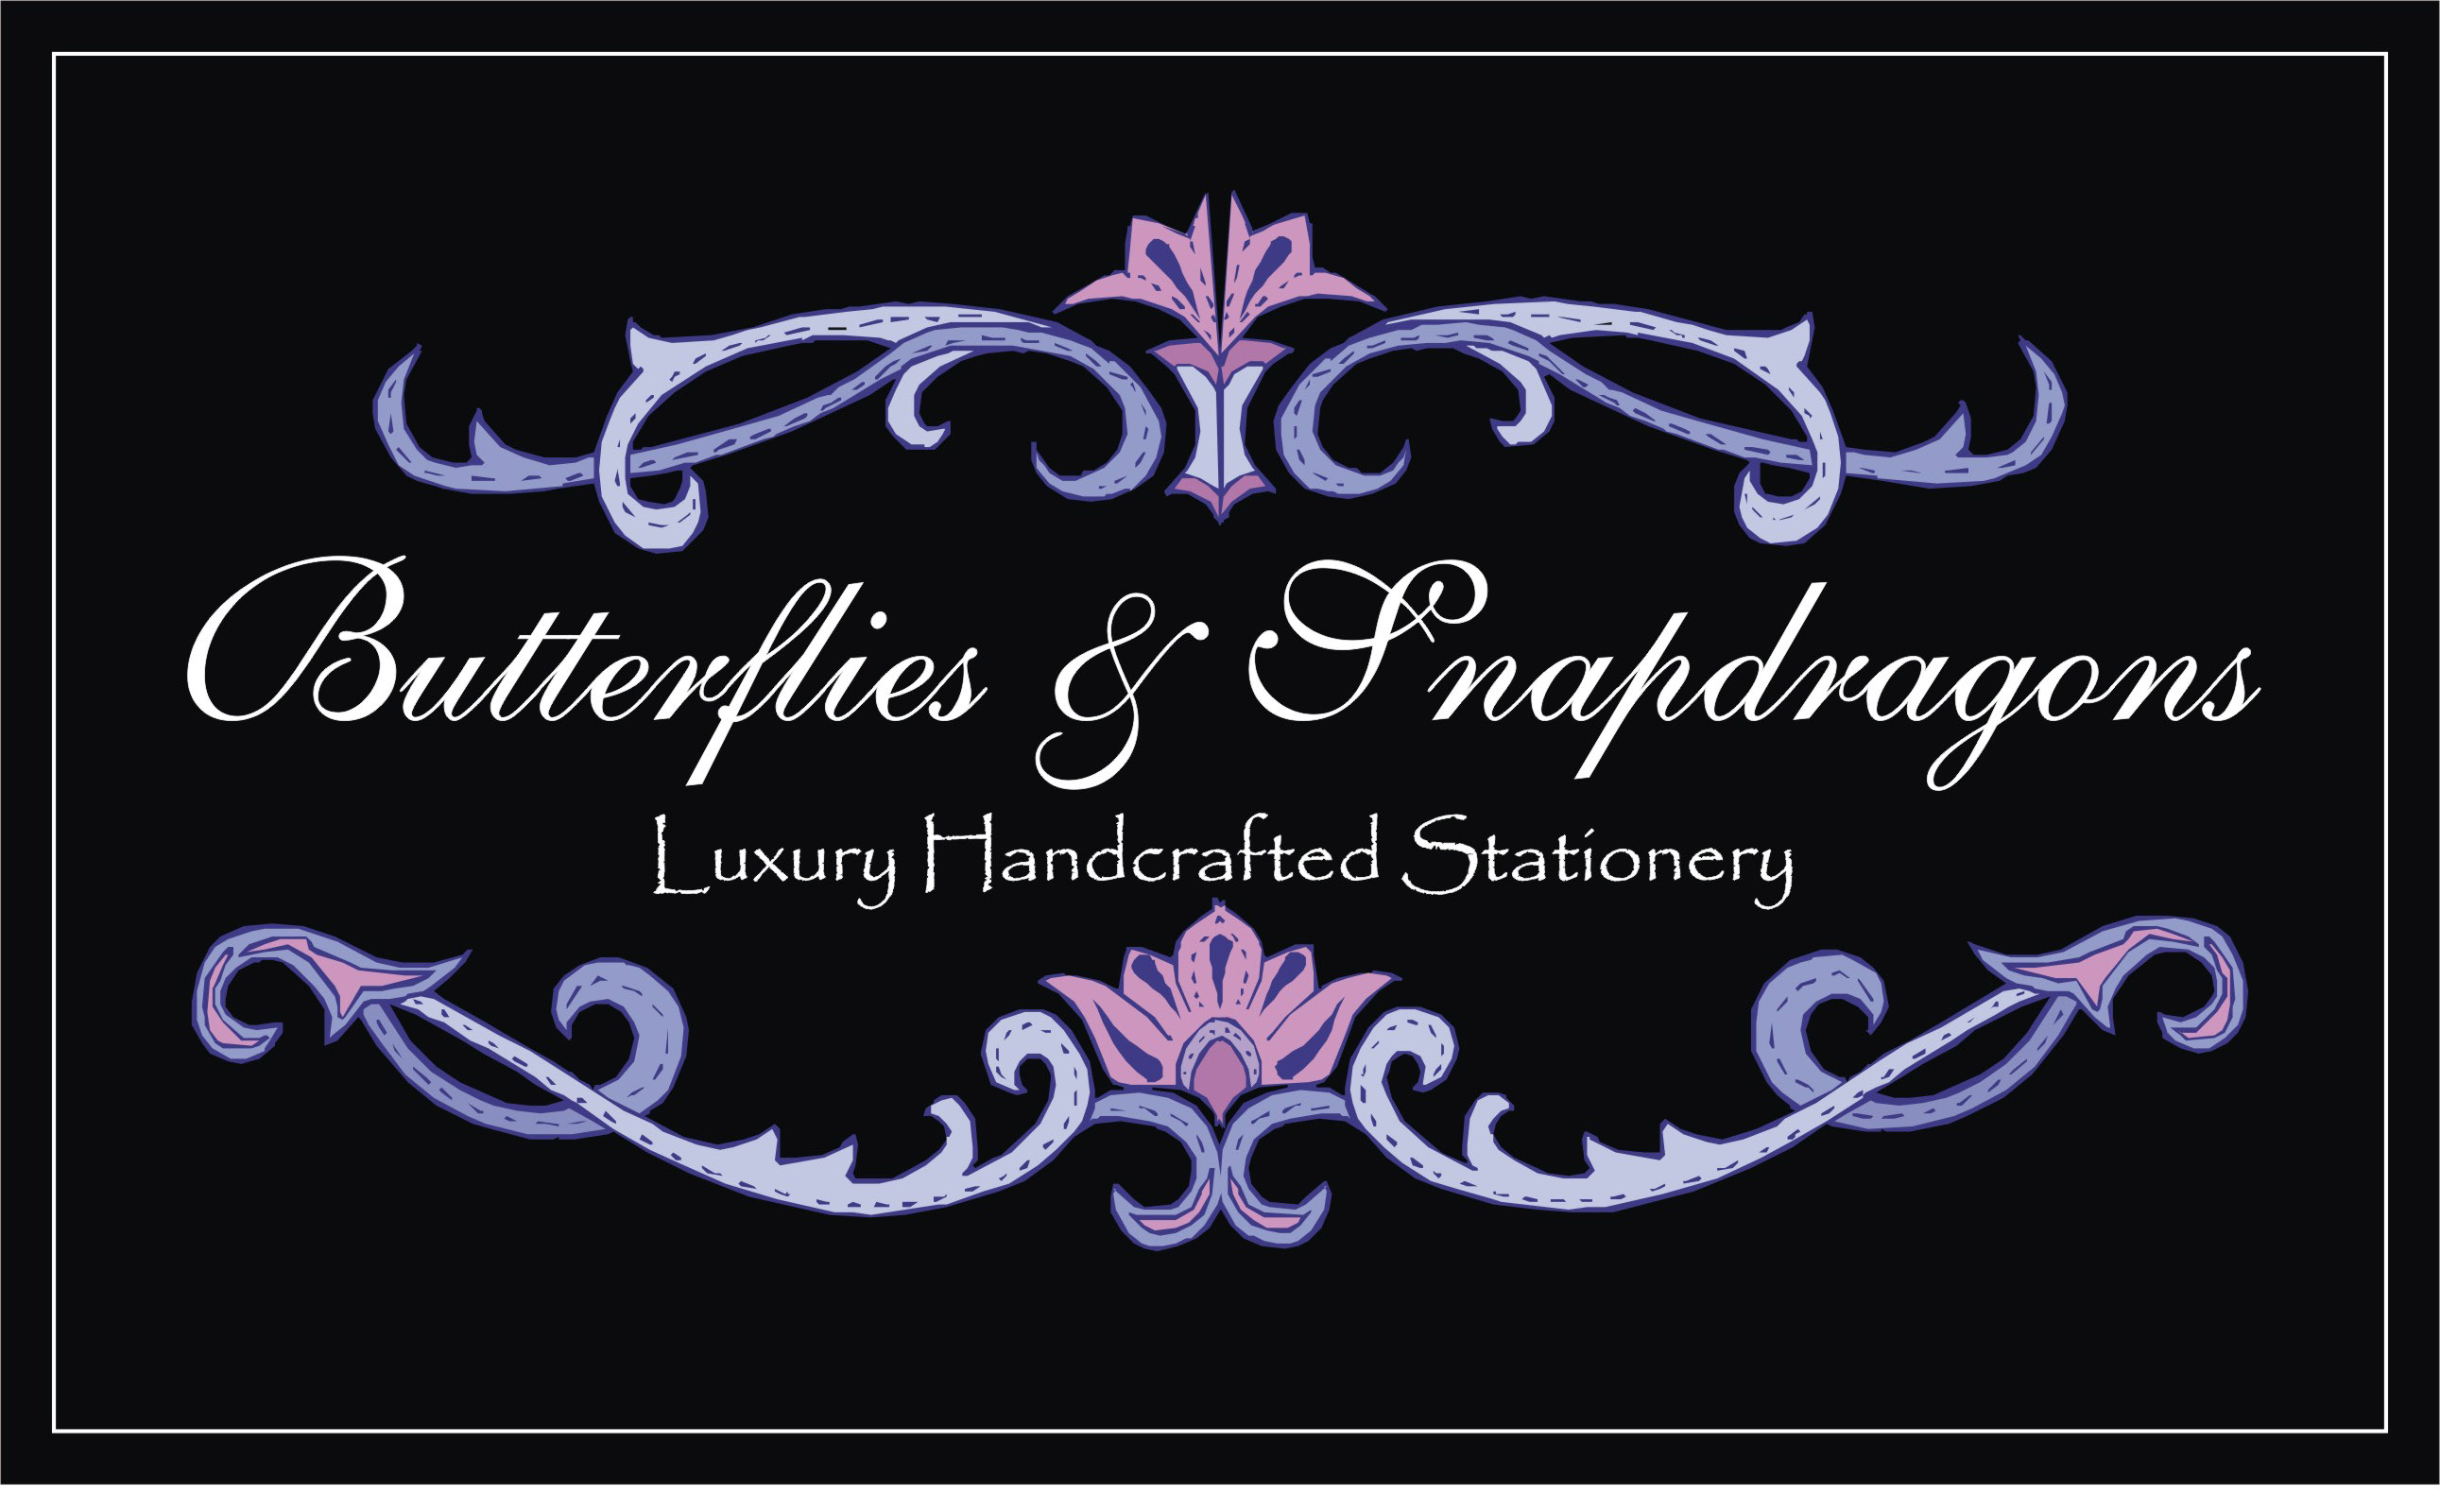 Butterflies and Snapdragons logo